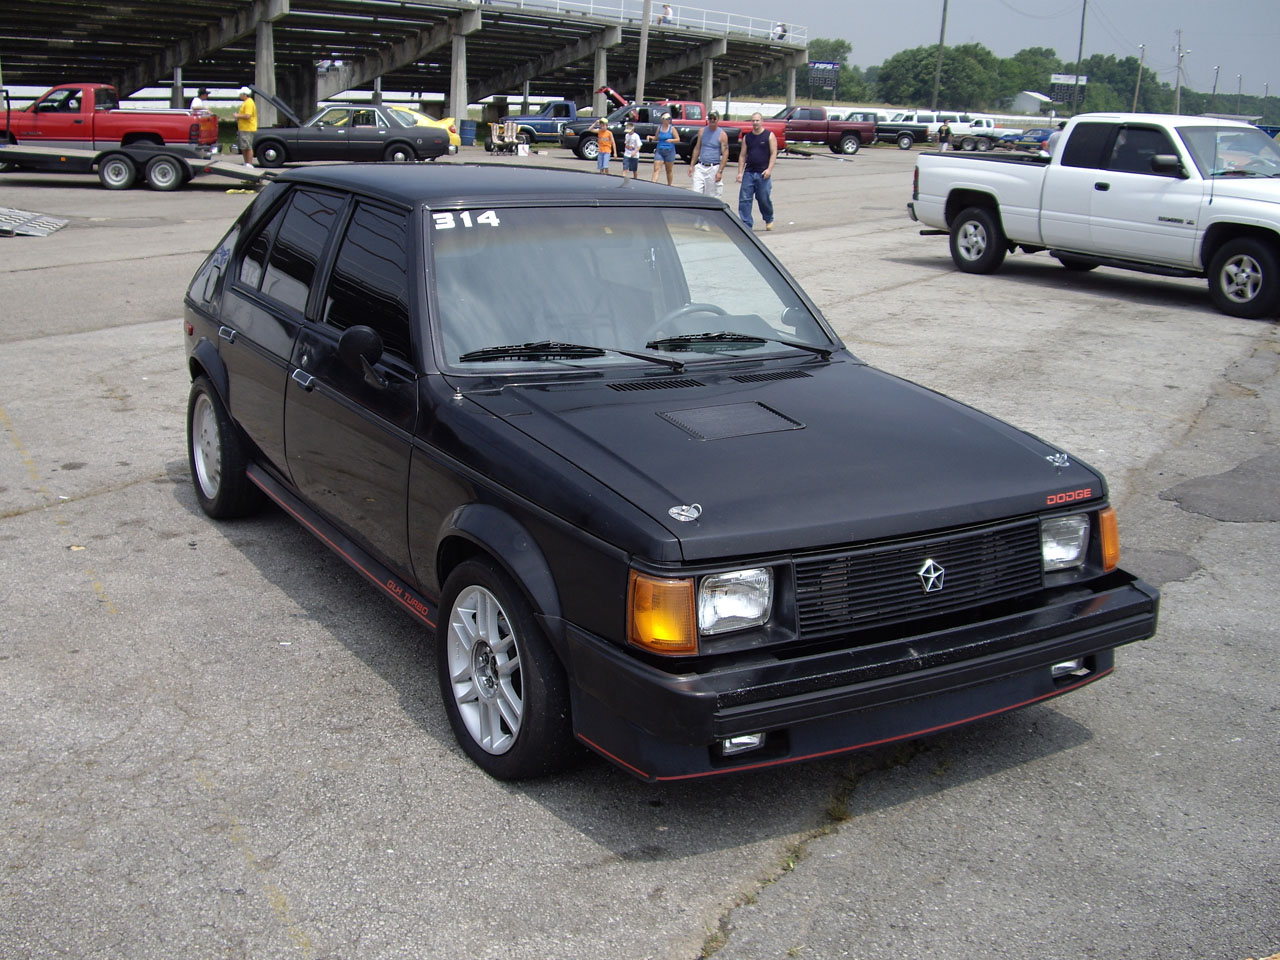 Dodge omni photo - 3